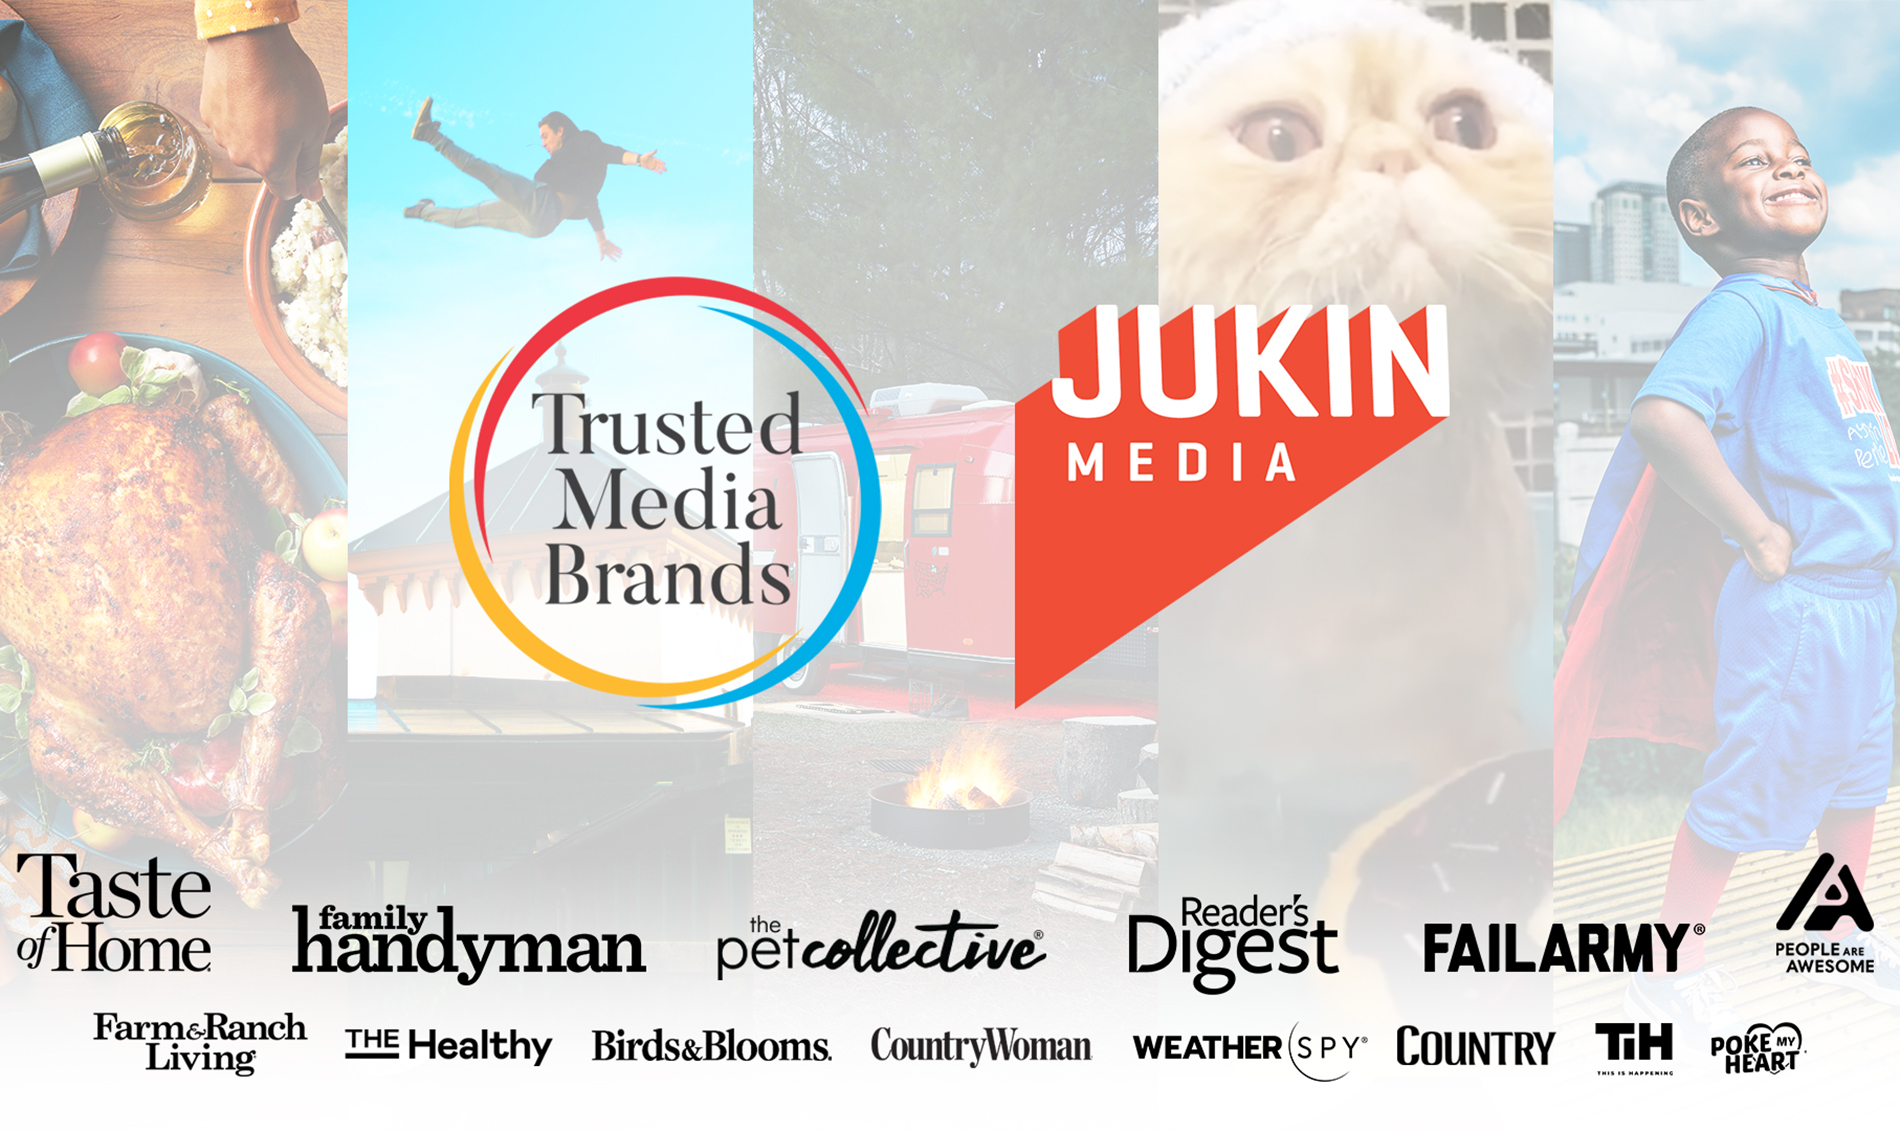 Jukin Media Acquired By 'Reader's Digest' Owner Trusted Media Brands